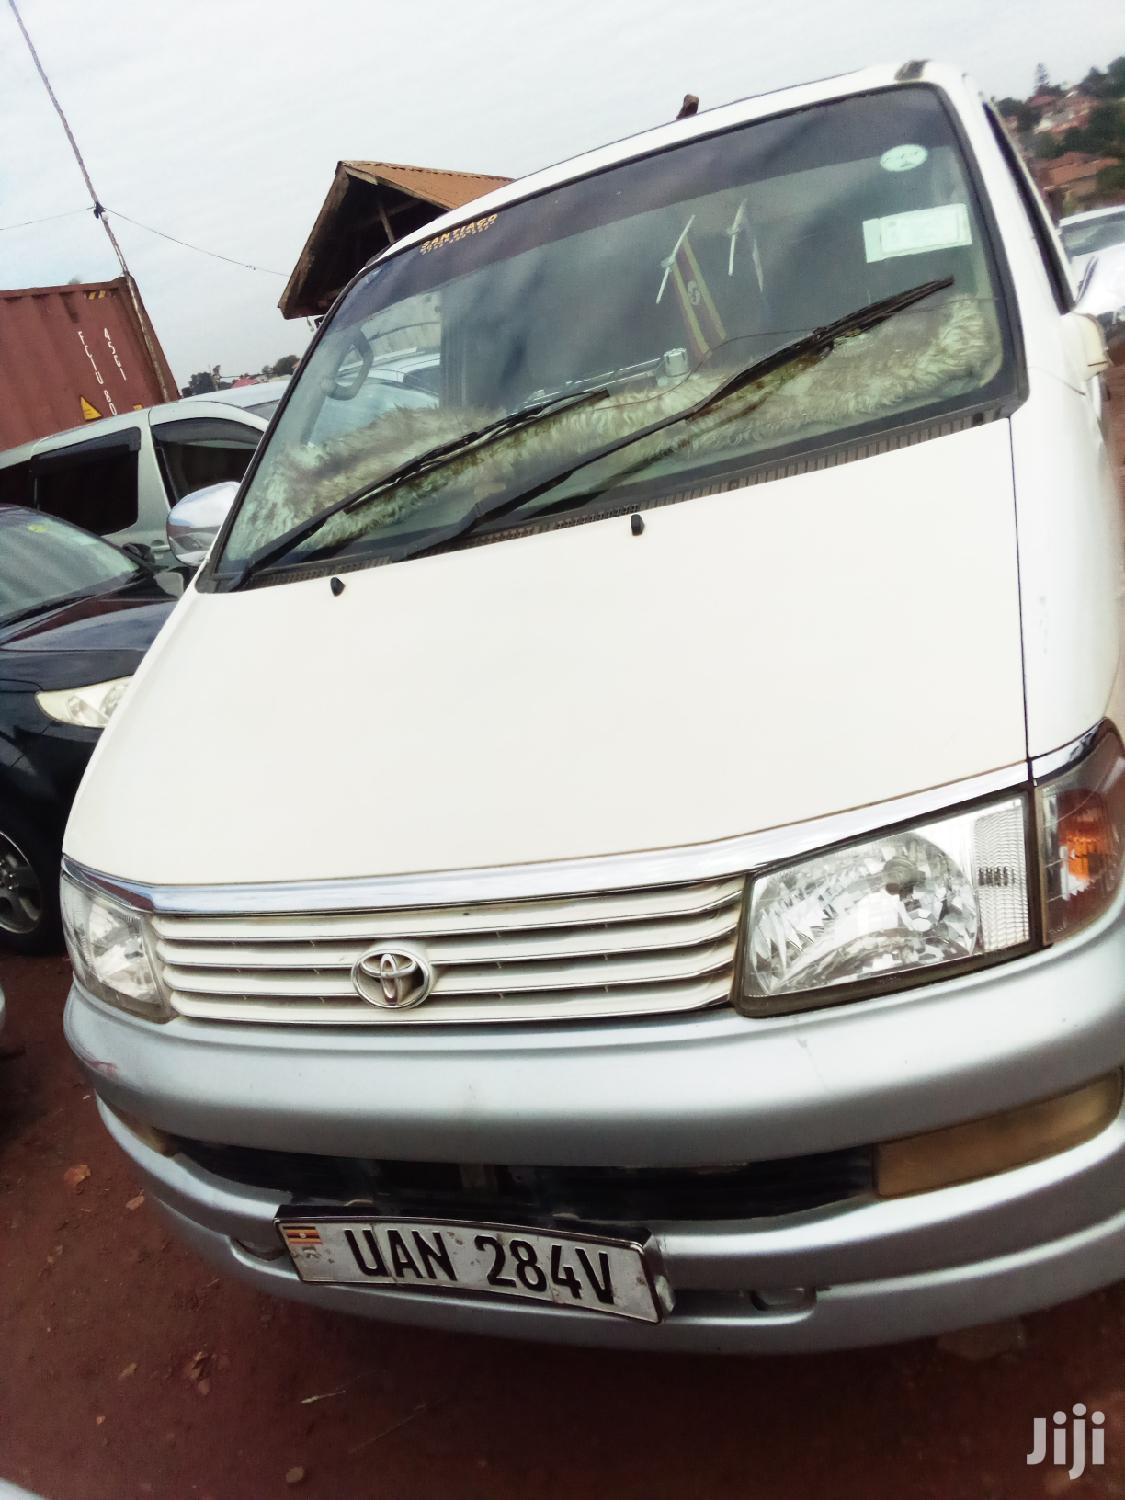 Archive: Toyota Lite-Ace 2003 Silver